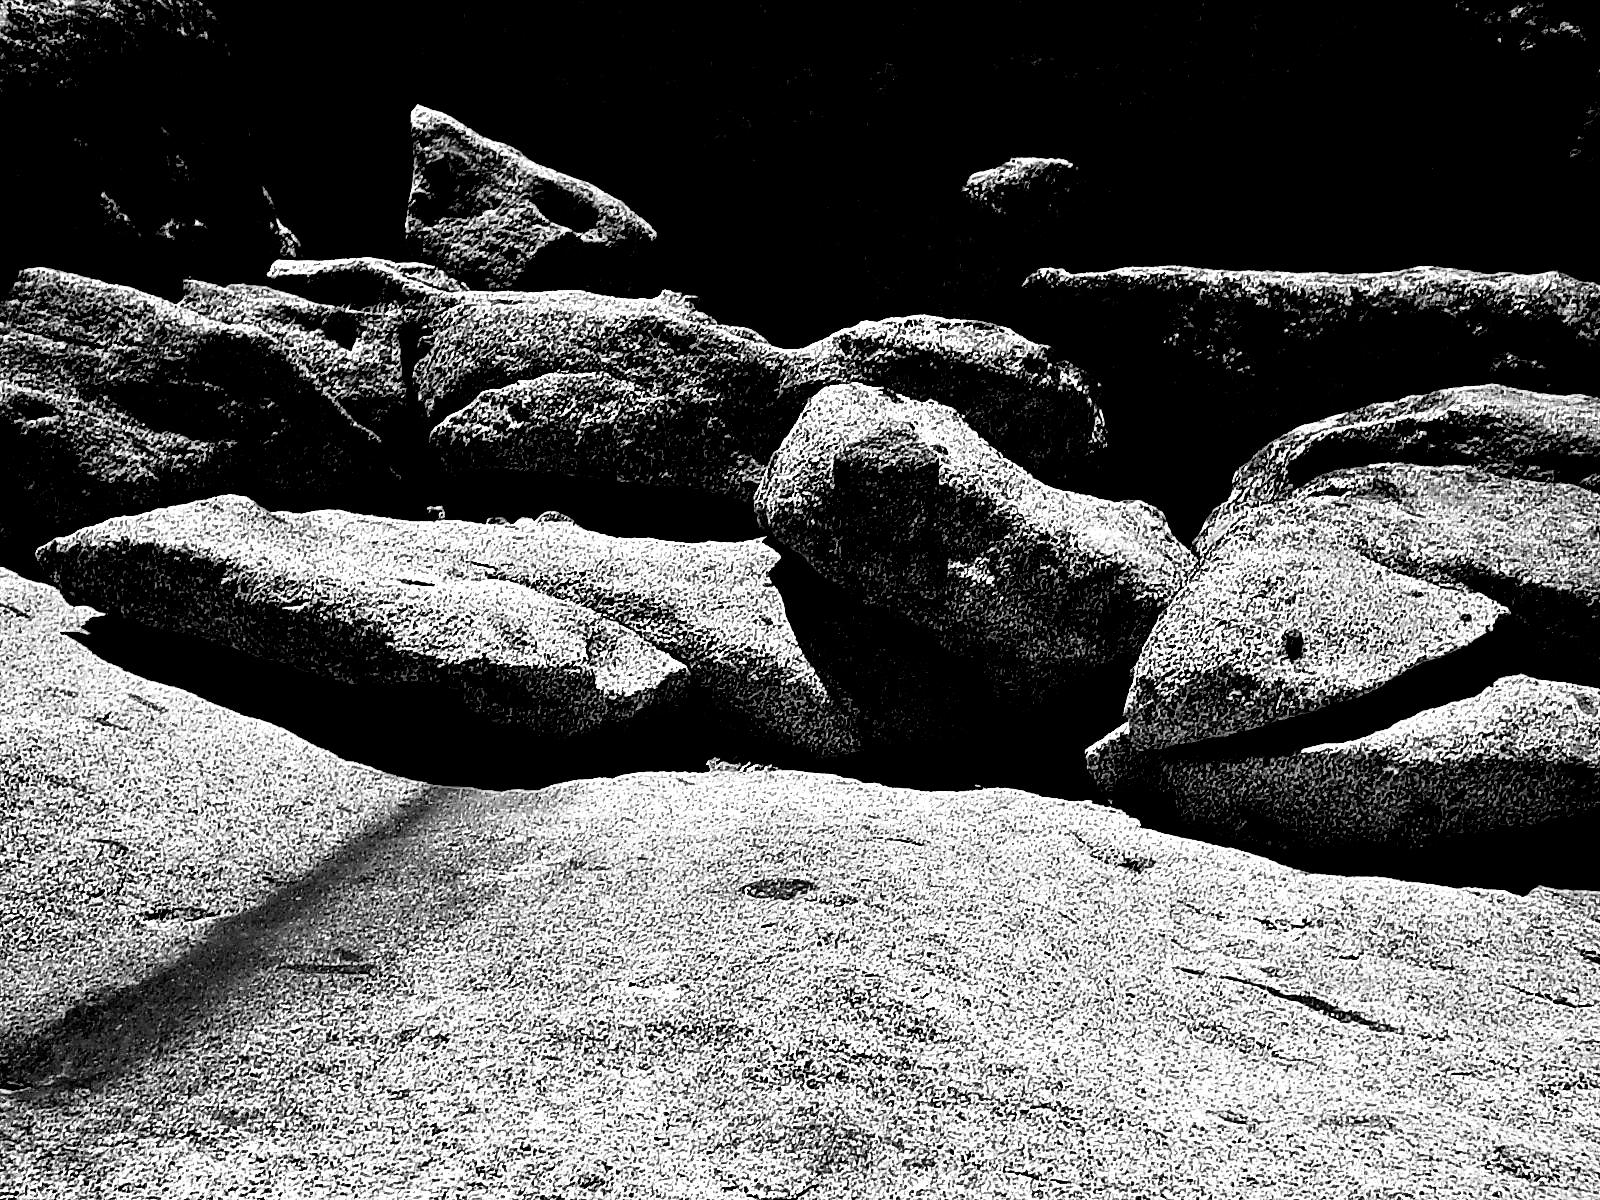 Granite, Blackandwhite, Black&white, Boulder, Boulders, HQ Photo